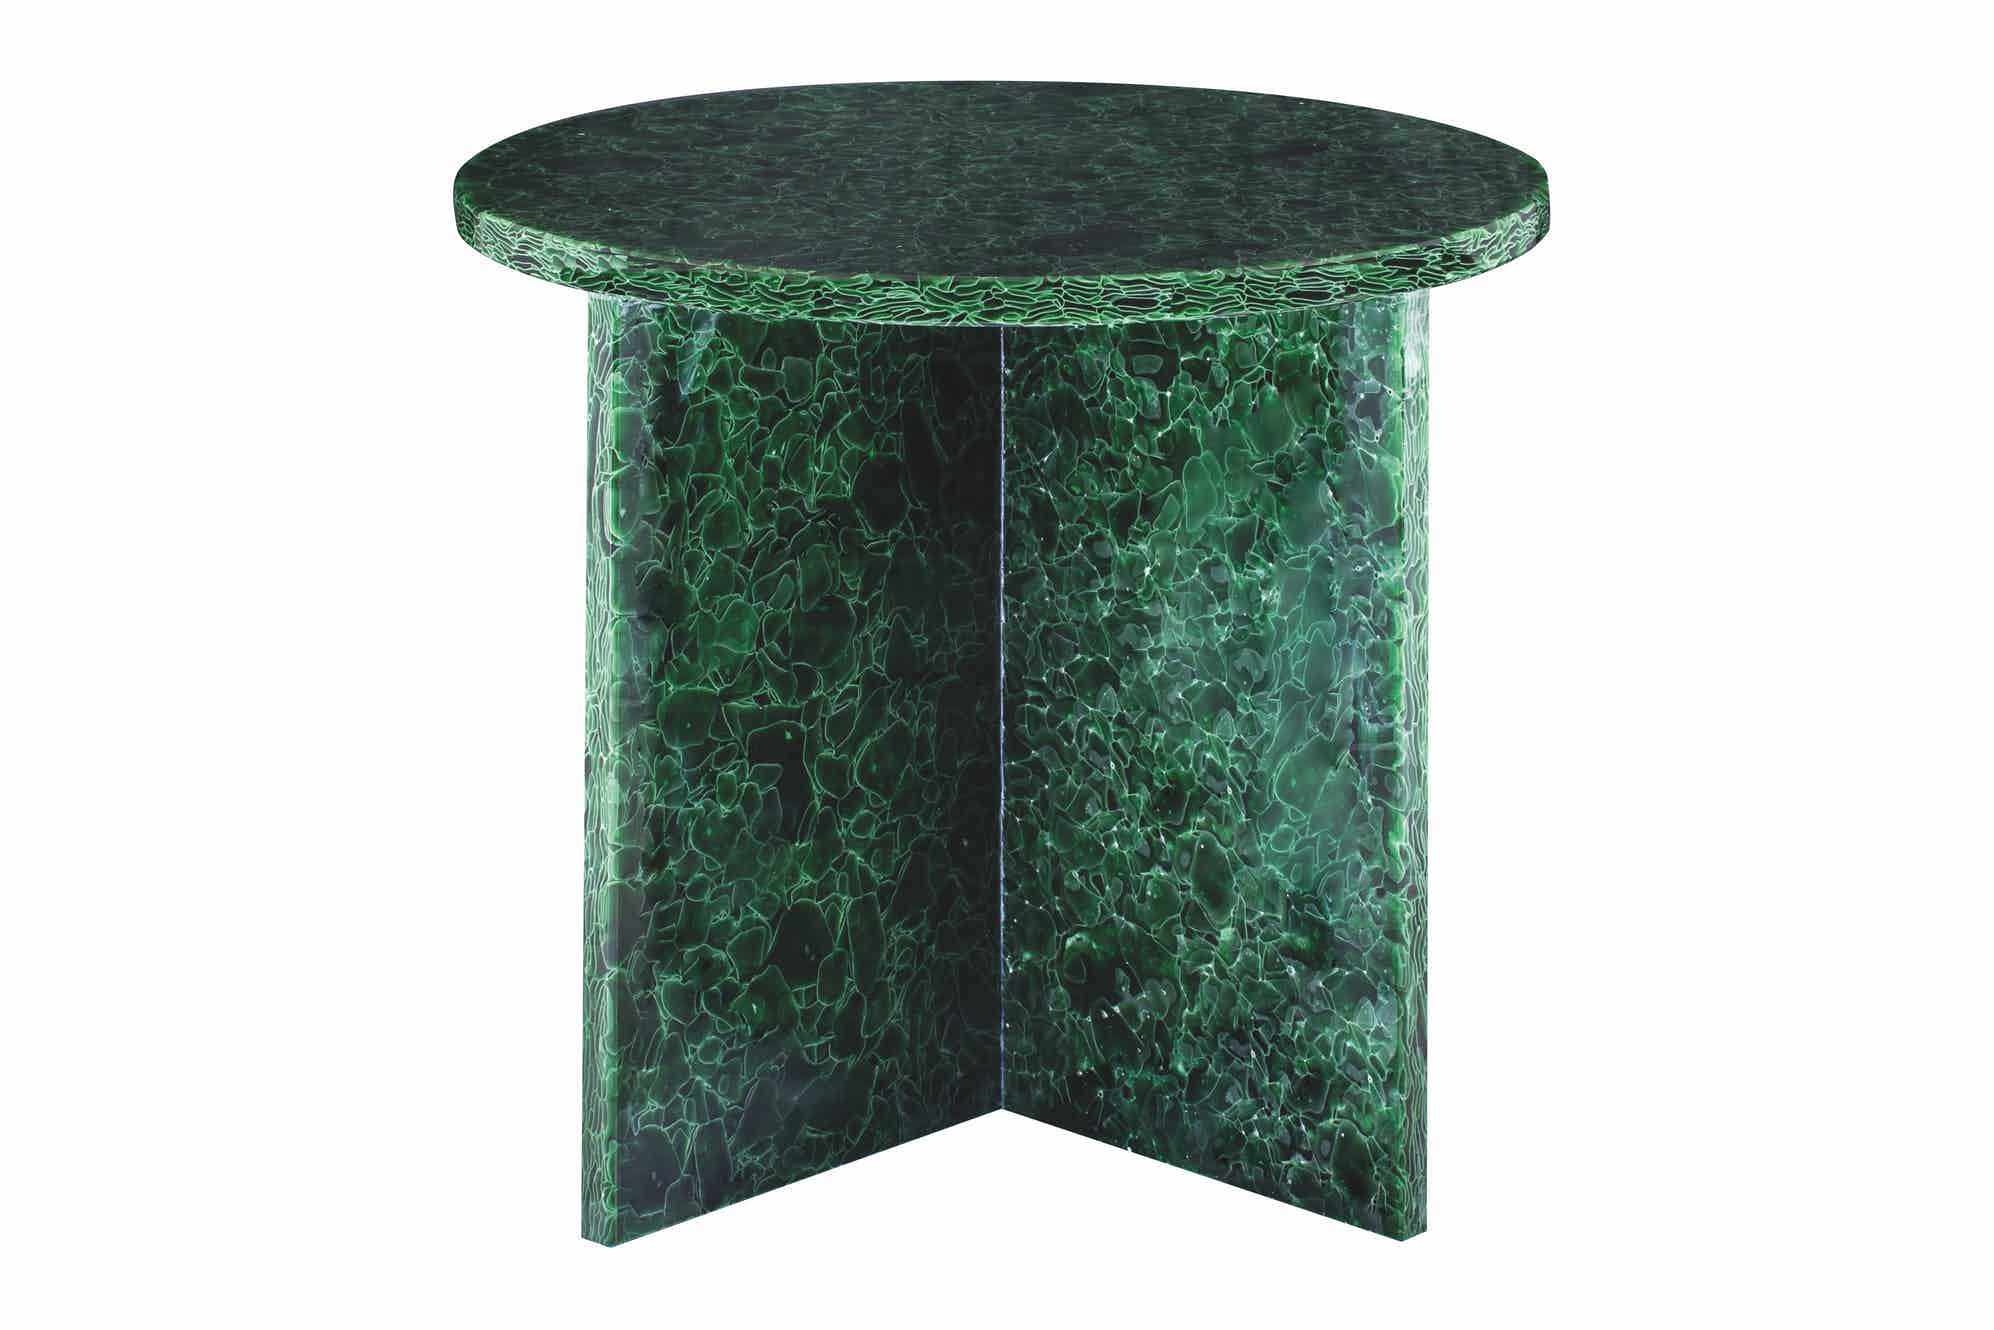 Pulpo-font-table-round-green-haute-living